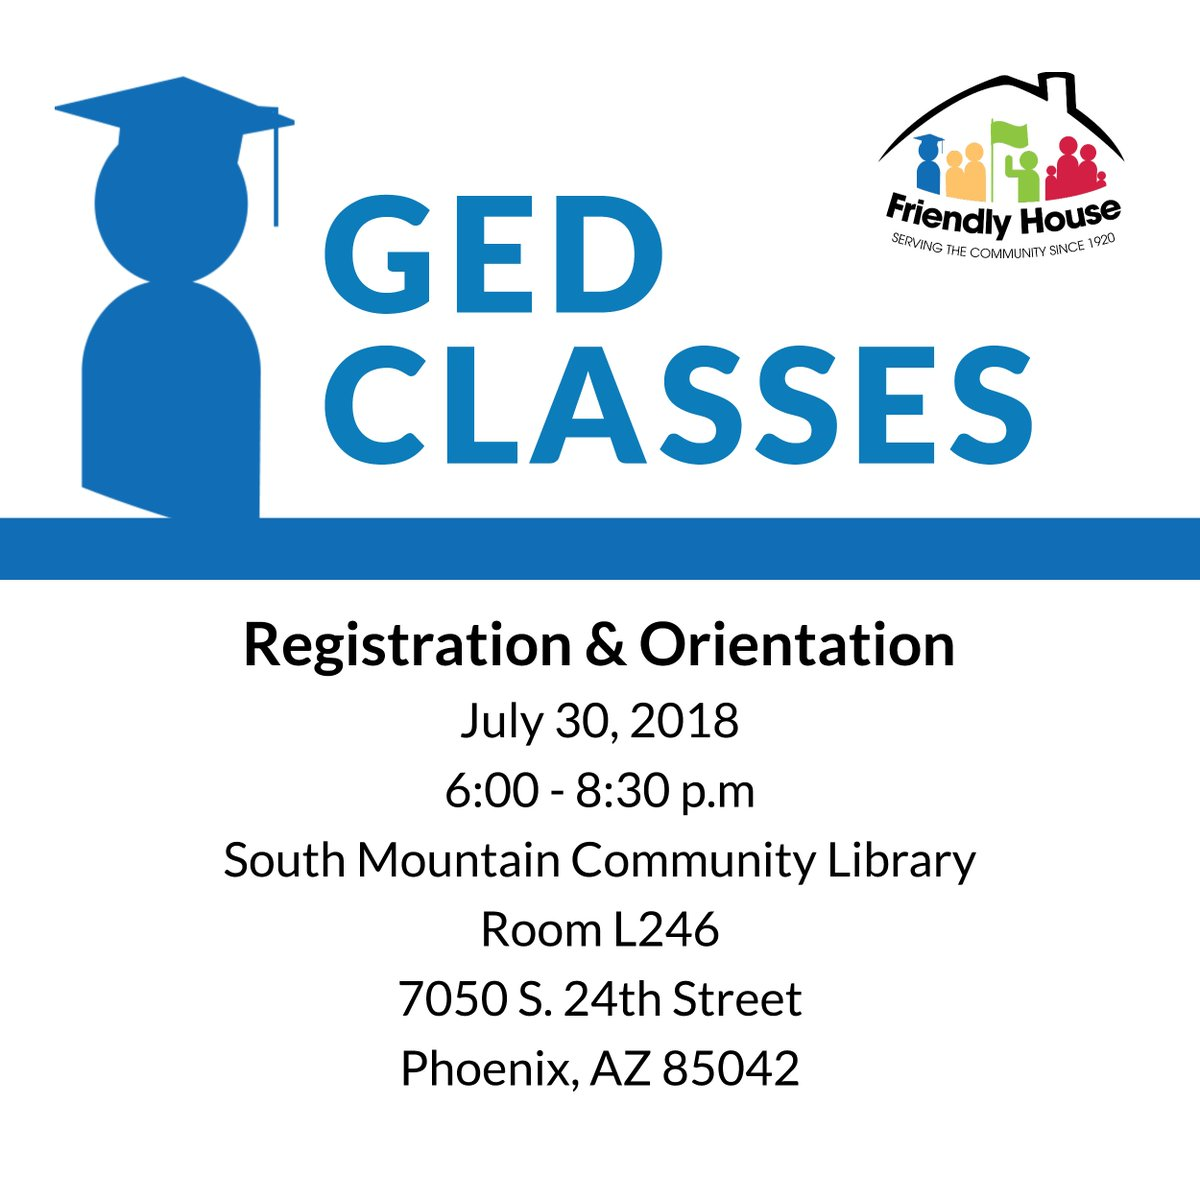 Free GED classes! Registration and orientation today. More info at  https://t.co/OxQ0tiFv1S. #GED #education https://t.co/QniAr85iR8